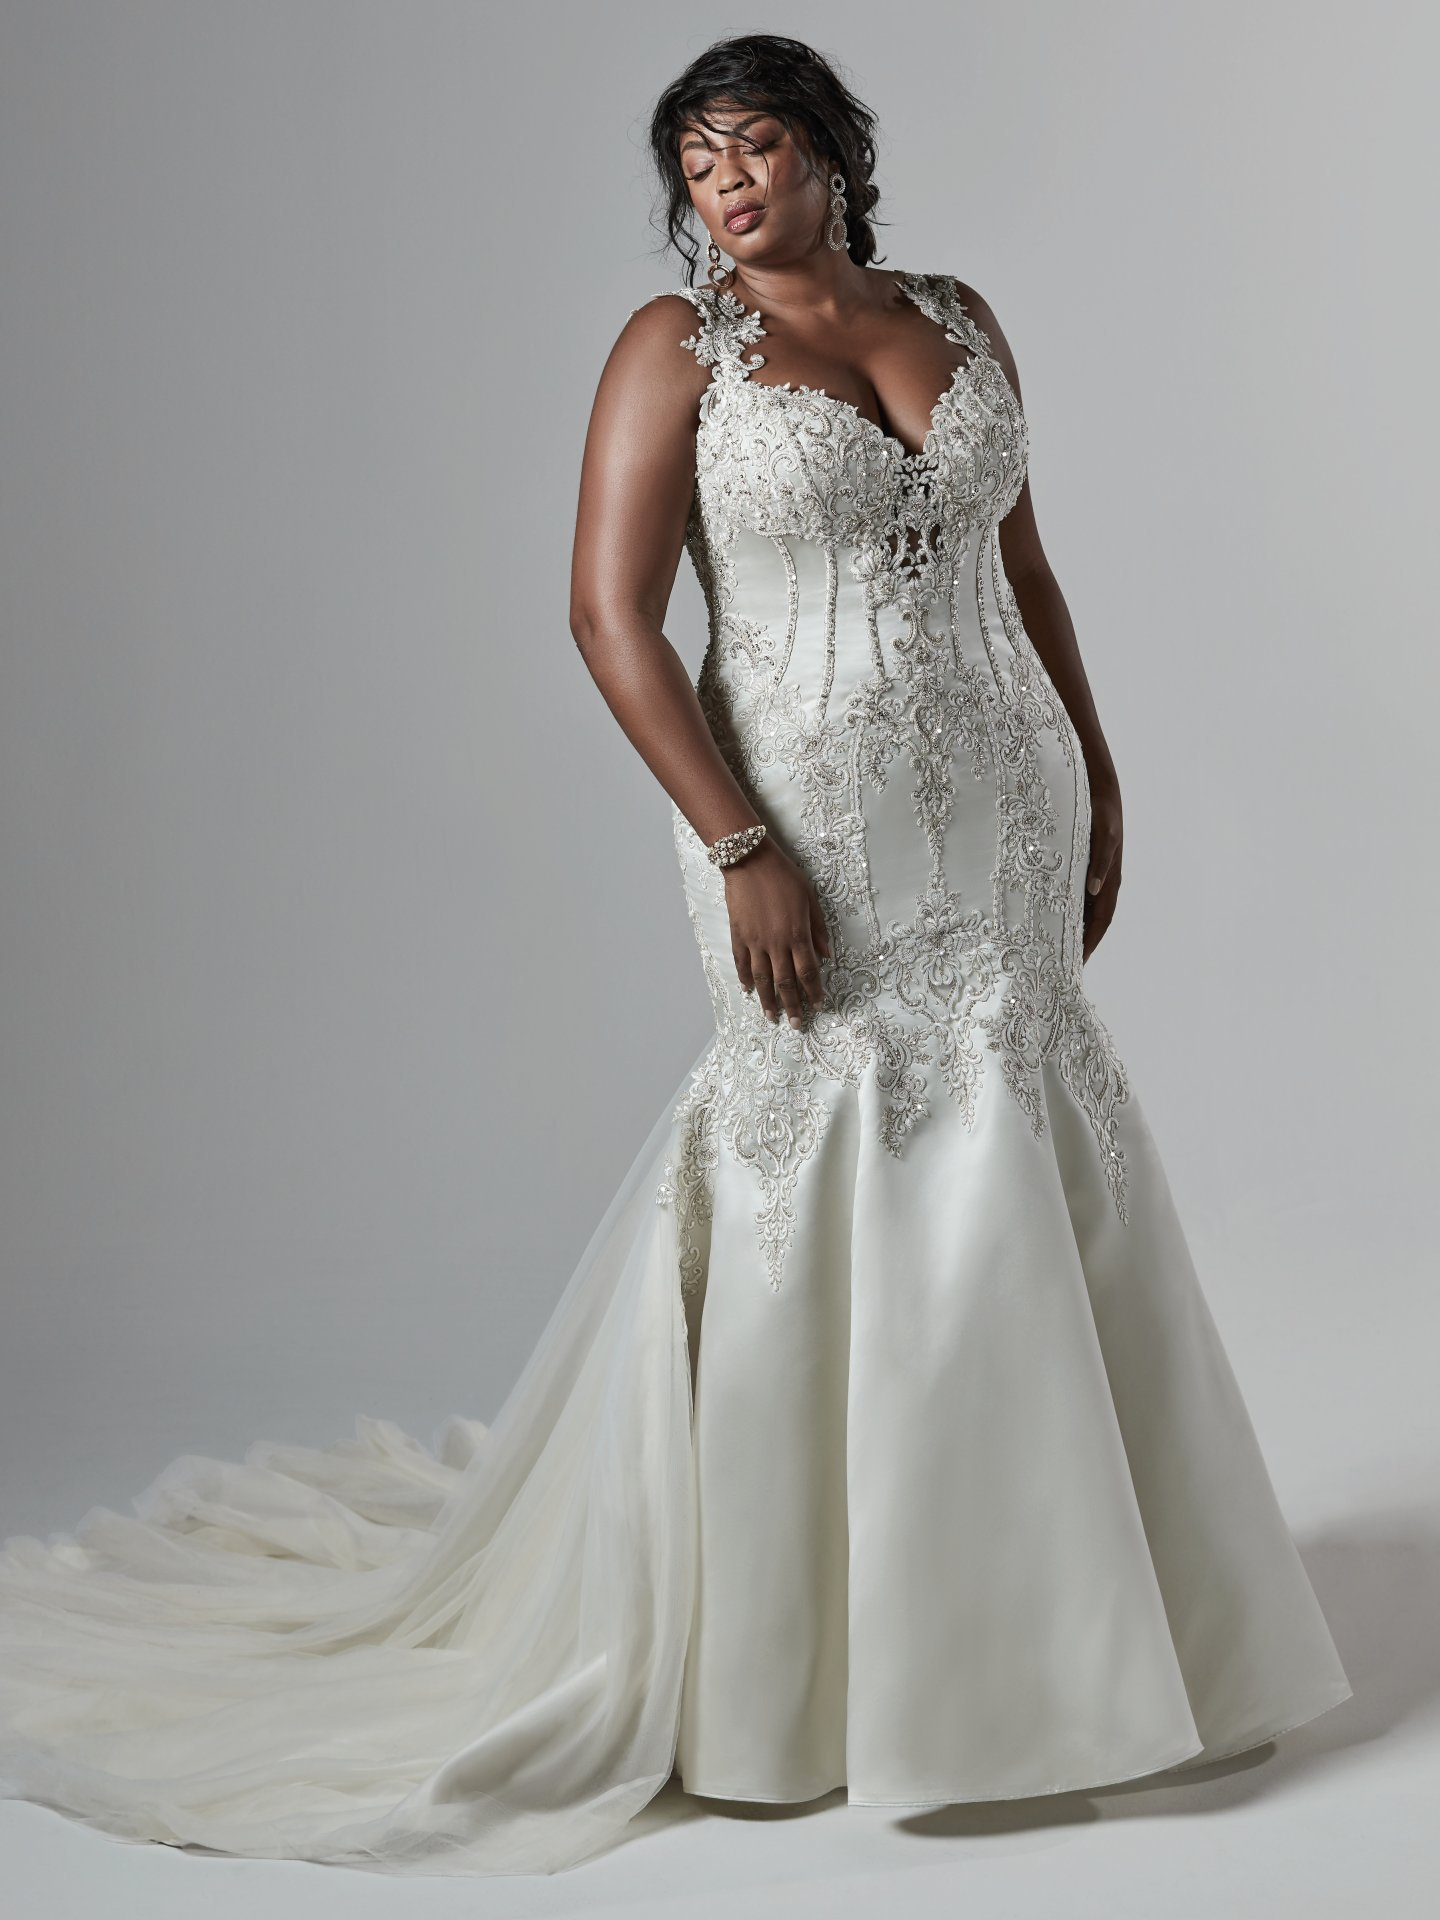 Sottero-and-Midgley-Darren-Lynette-9SC885AC-Curve-Main.jpg